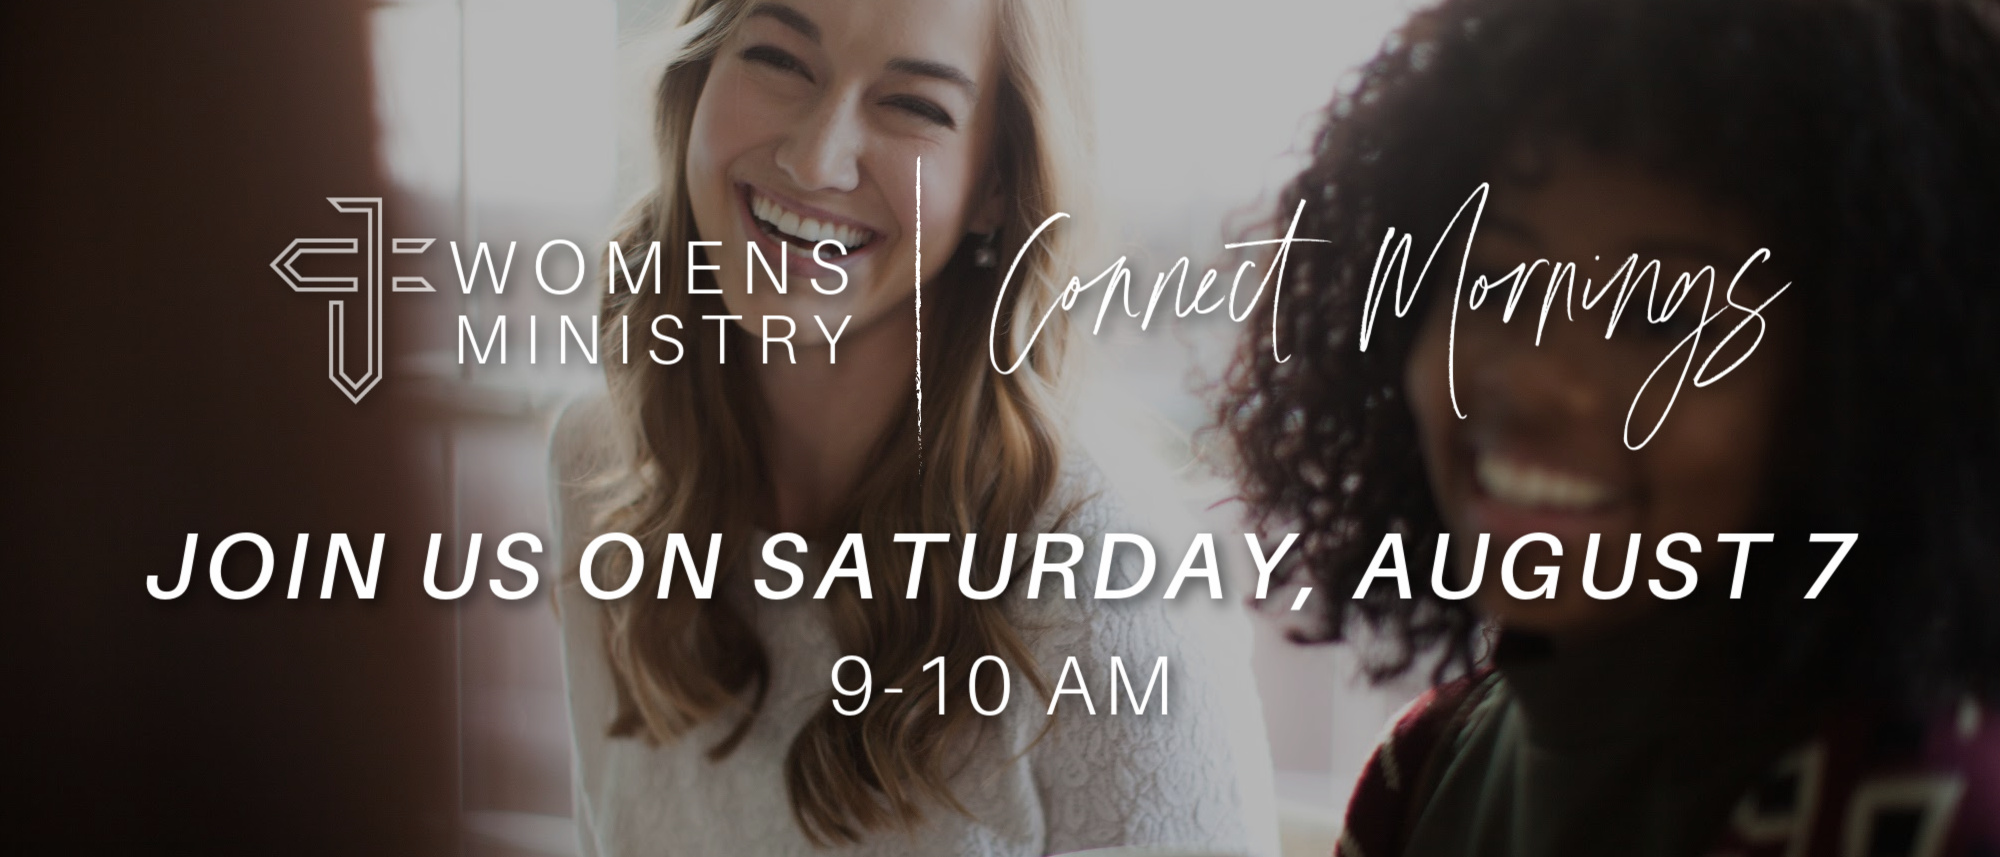 Join us for our next Connect Morning on Saturday, August 7!